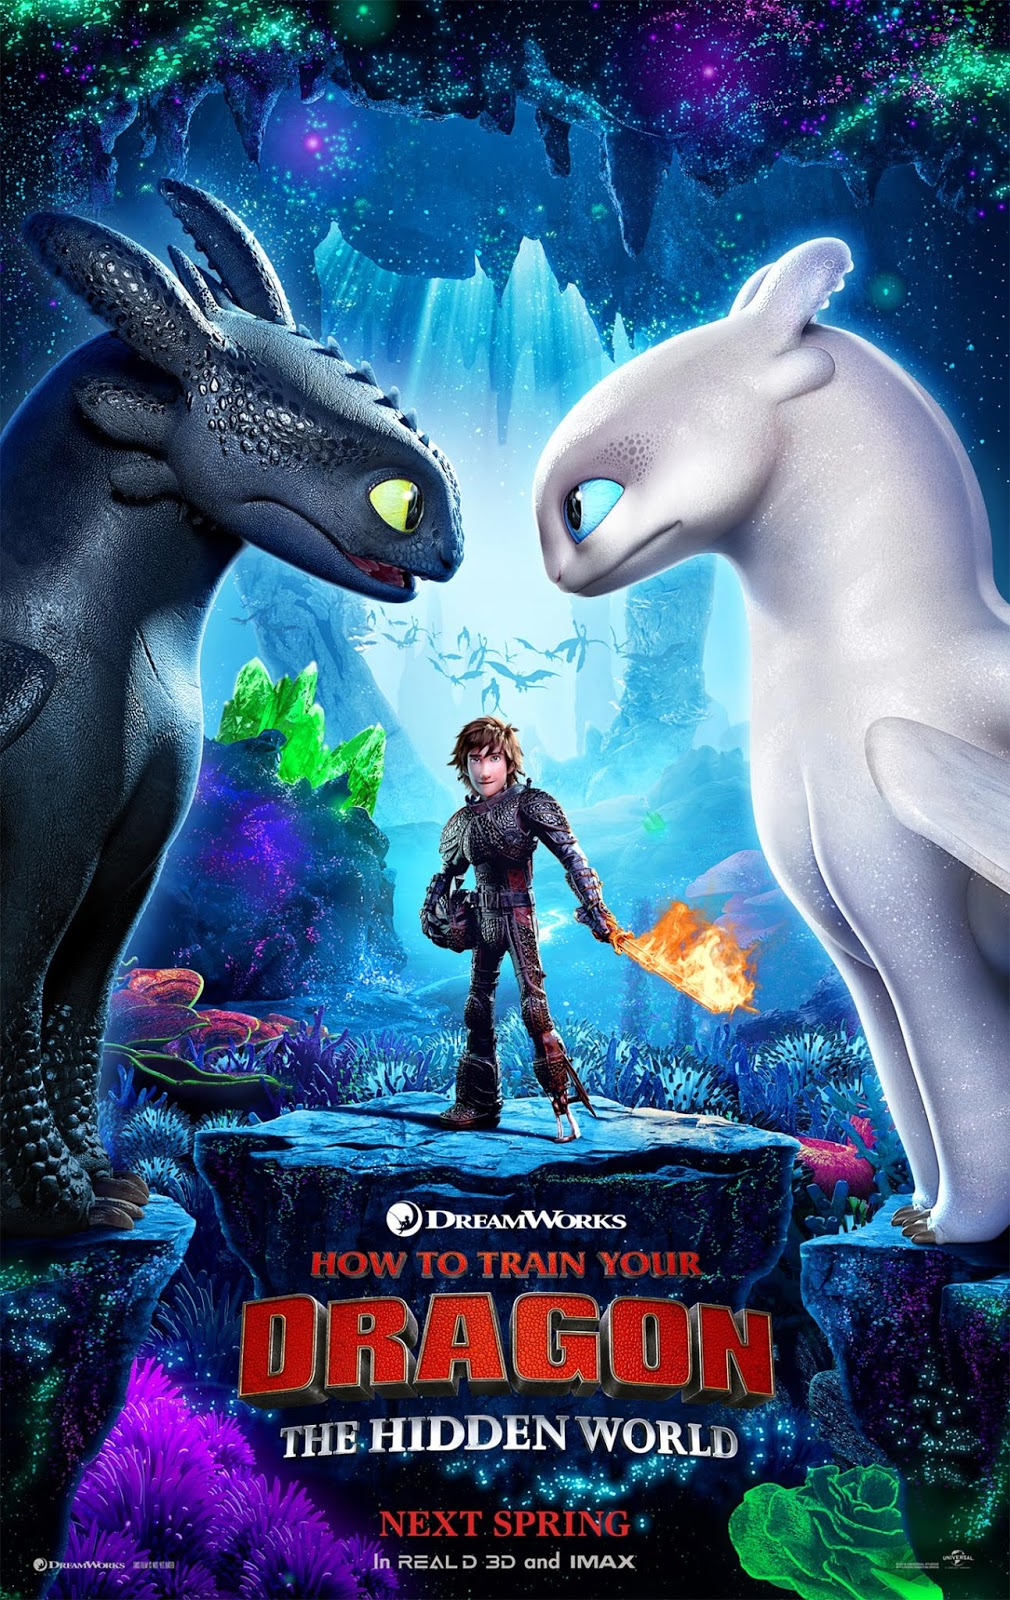 How to train your dragon the hidden world poster trailer how to train your dragon the hidden world poster trailer ccuart Images